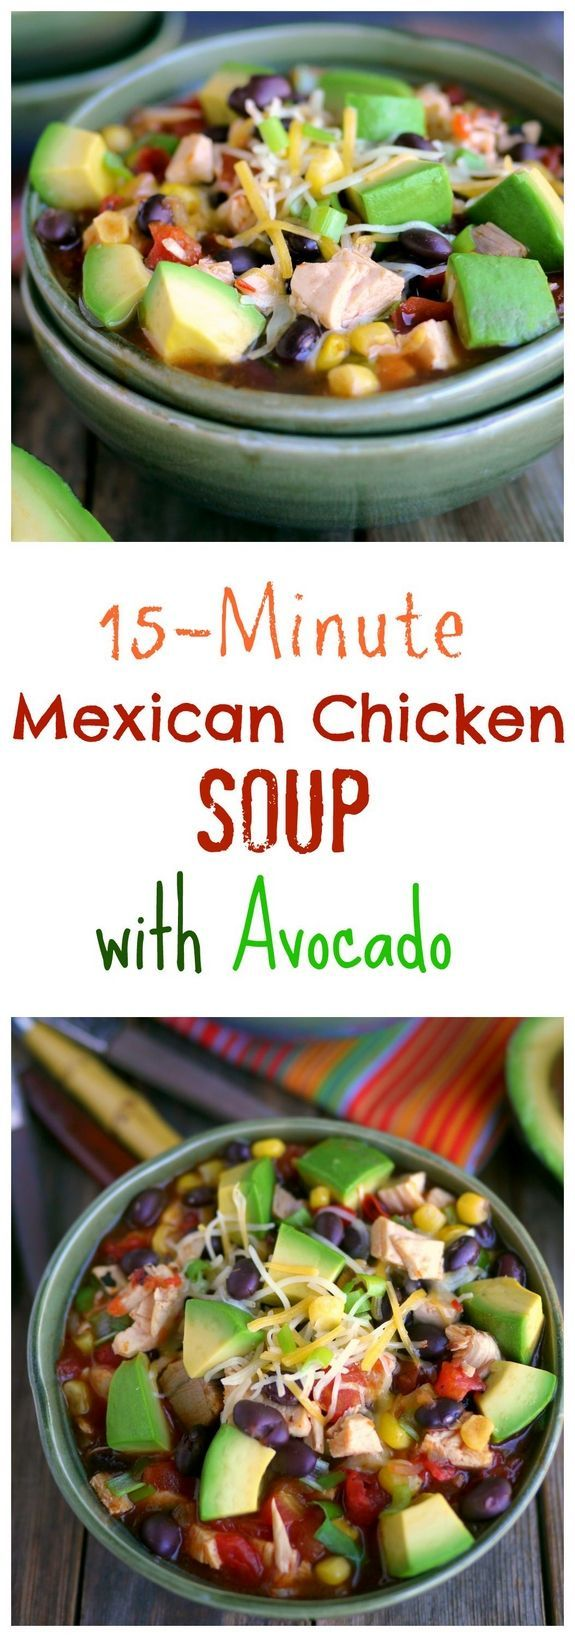 15-Minute Mexican Chicken Soup with Avocado. You are going to love how easily this comes together from http://NoblePig.com